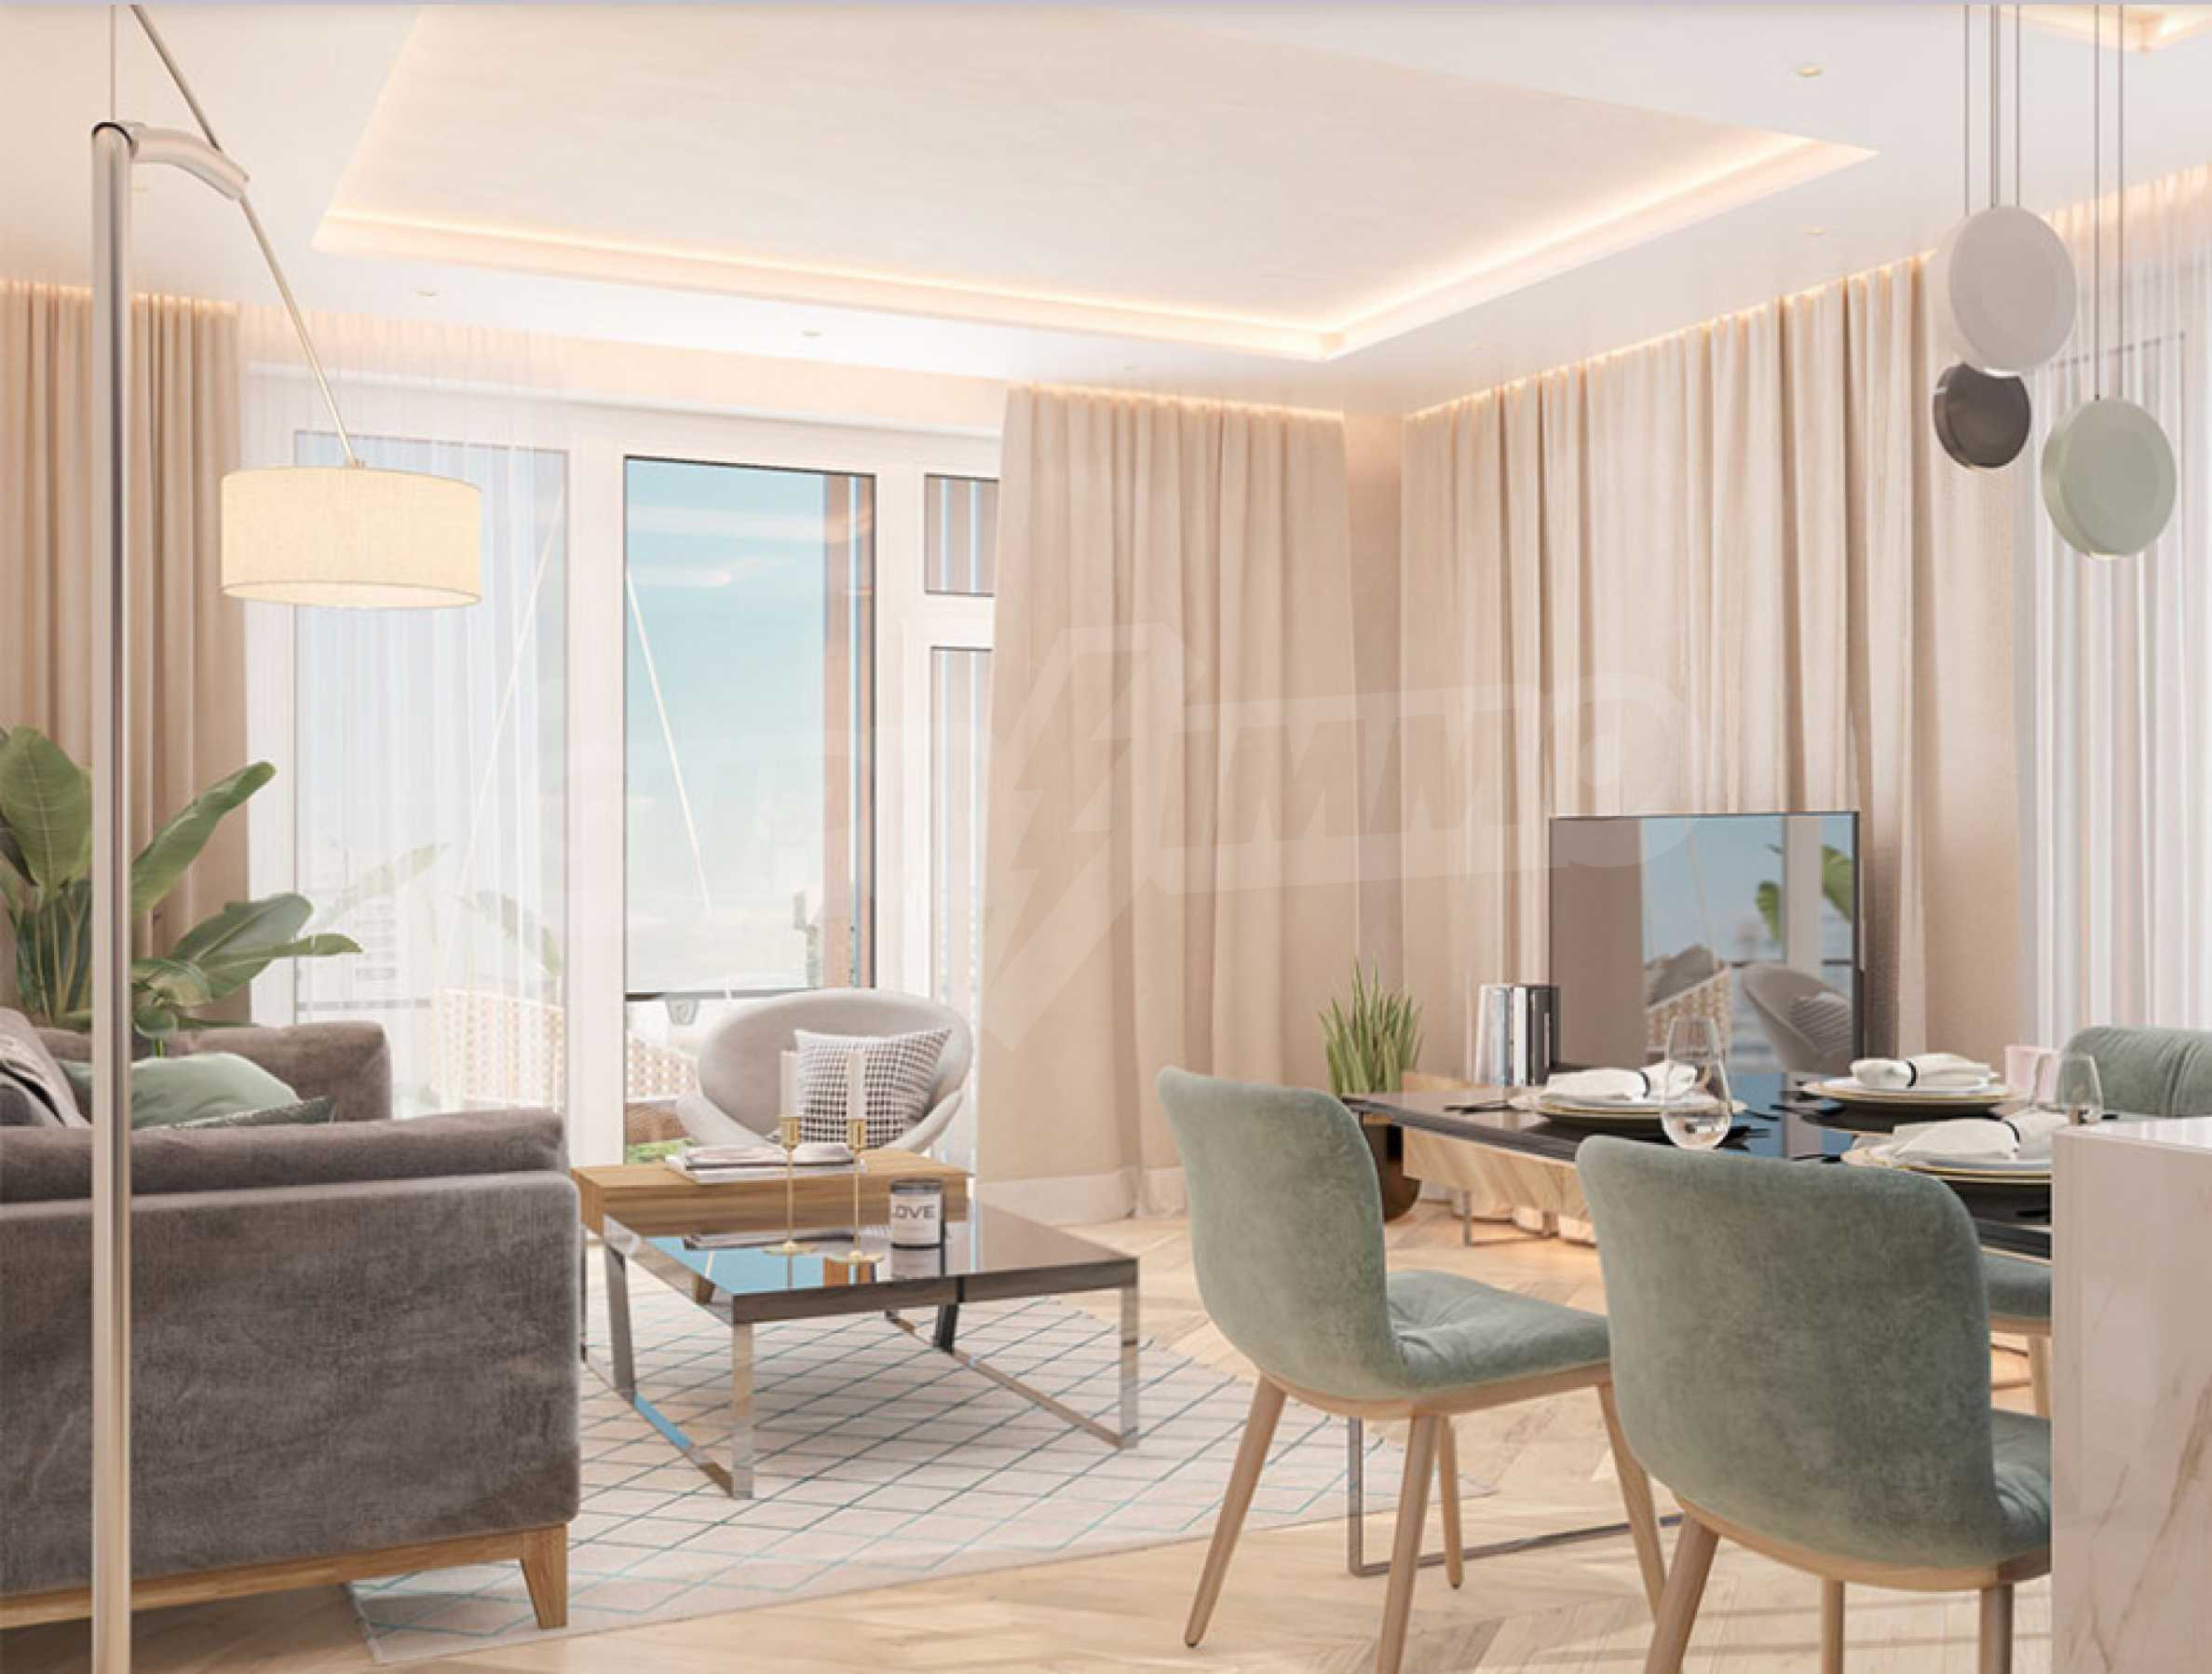 Two bedroom apartment overlooking a new building next to a park, Mall Sofia and metro station 4